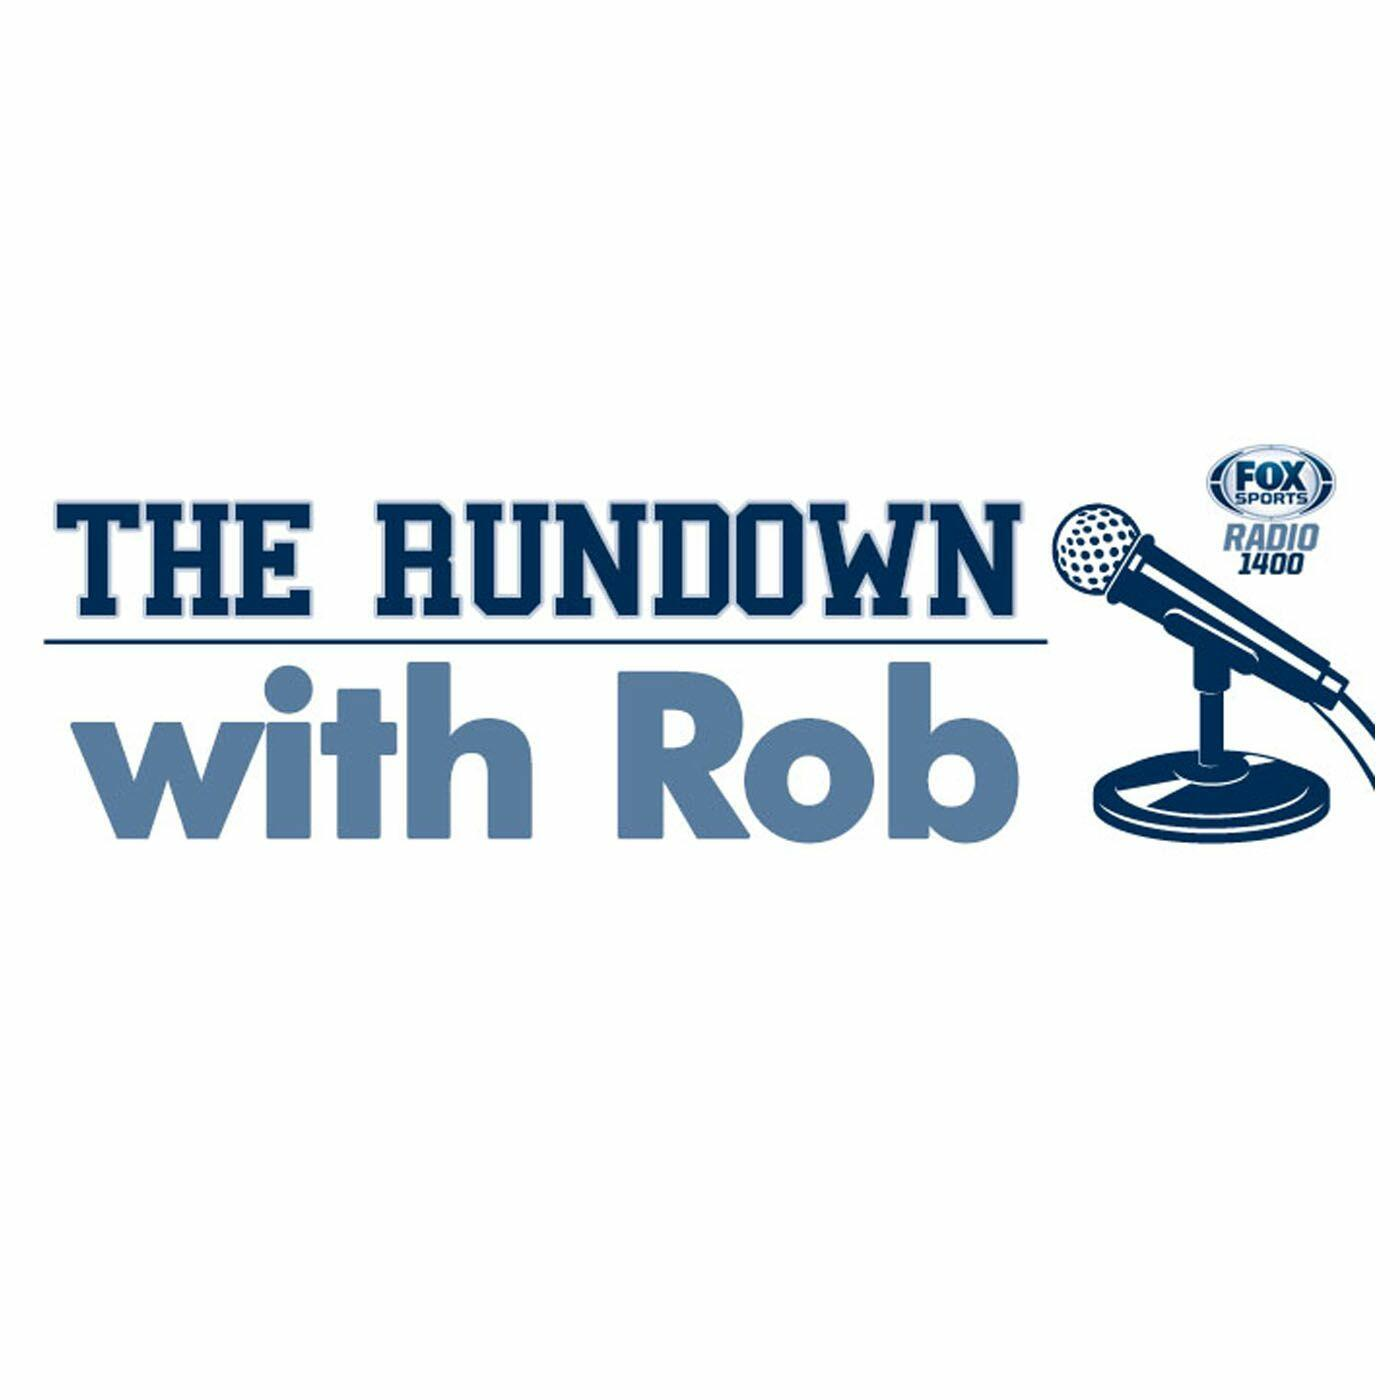 Listen to the The Rundown with Rob Sanders Episode - A look the top 25 on iHeartRadio | iHeartRadio